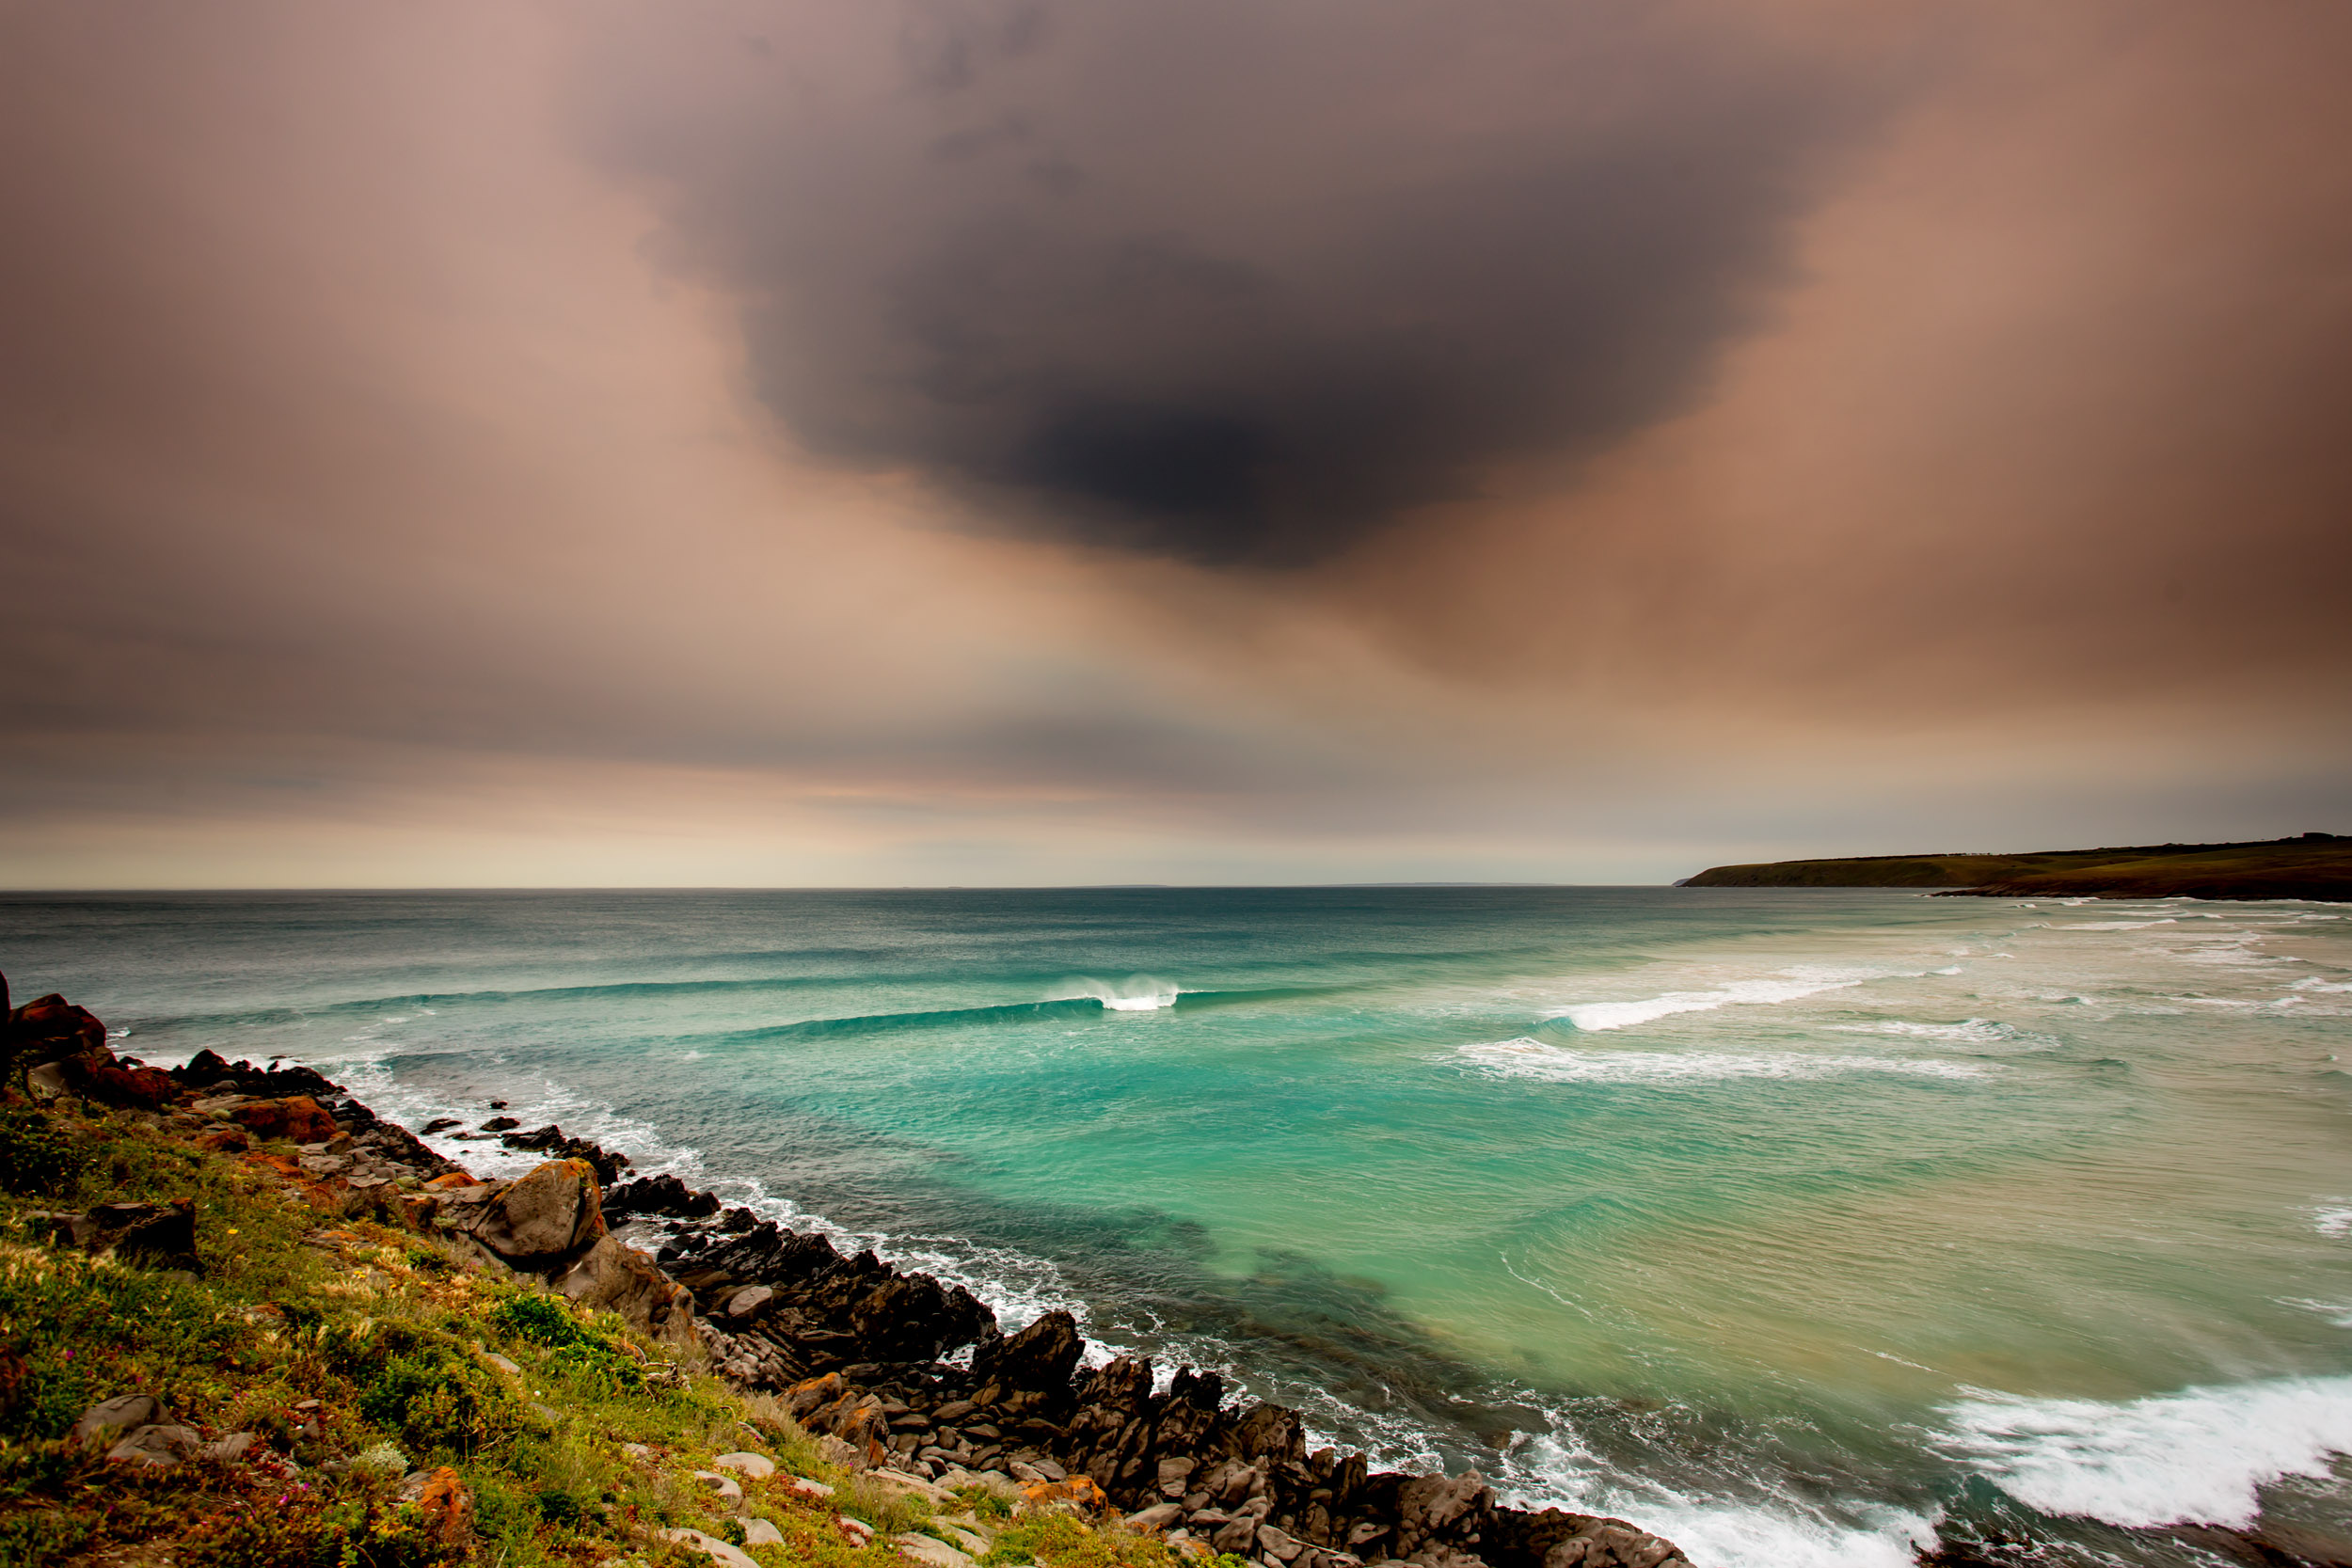 parsons-beach-victor-harbor-south-australia.jpg